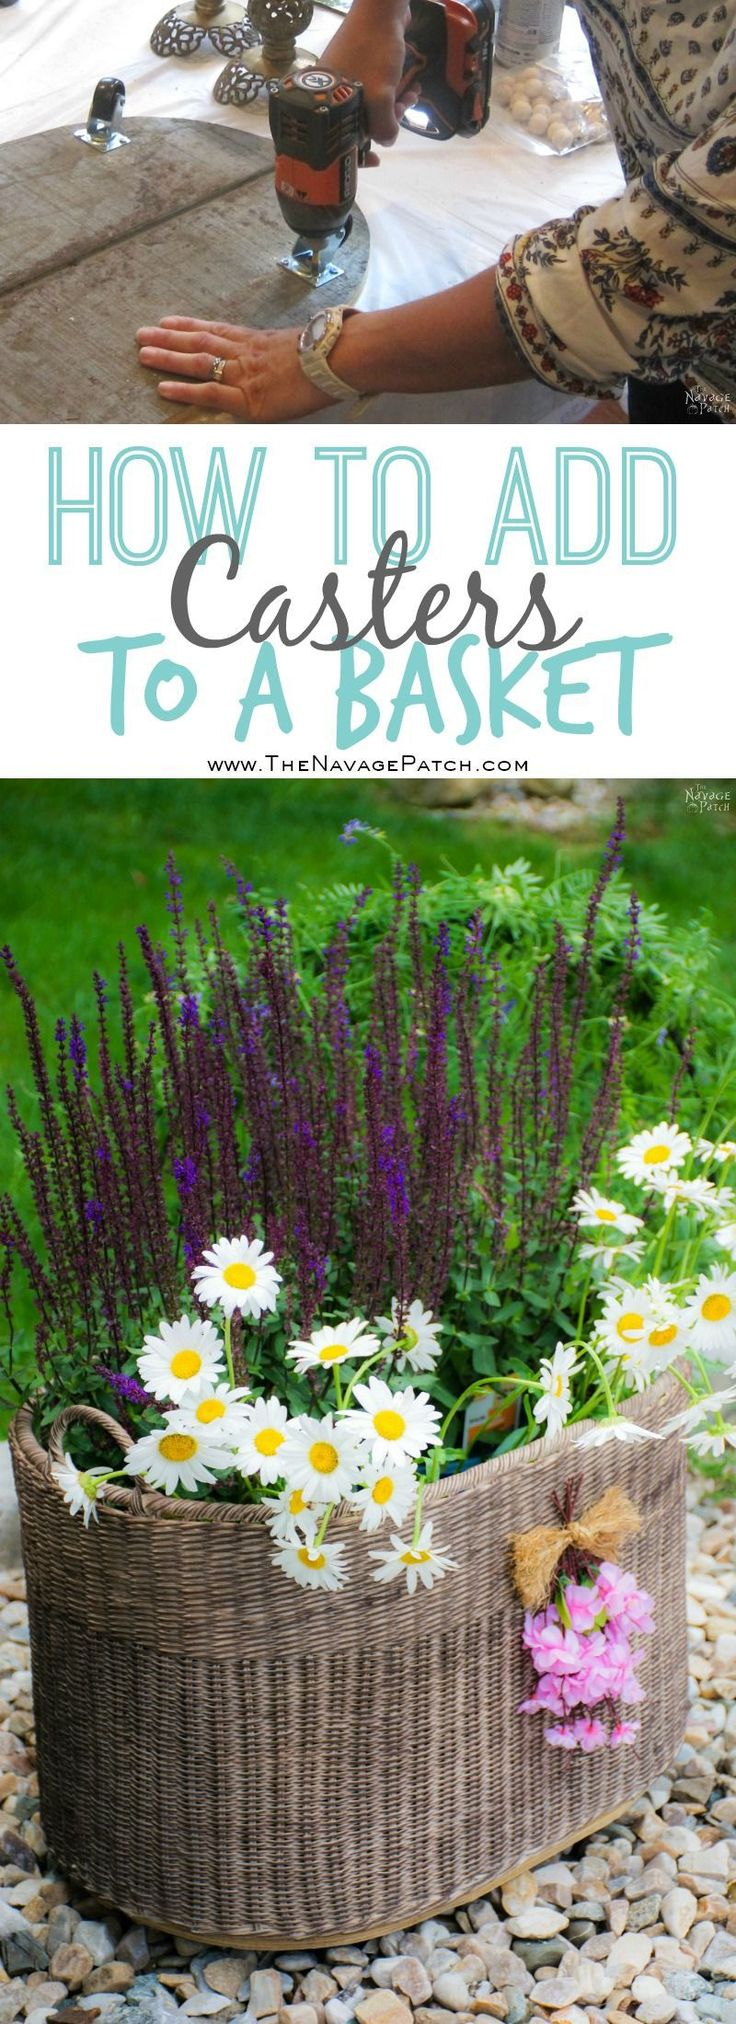 DIY Planter Basket {with casters}   How to add casters to a basket   DIY painted...